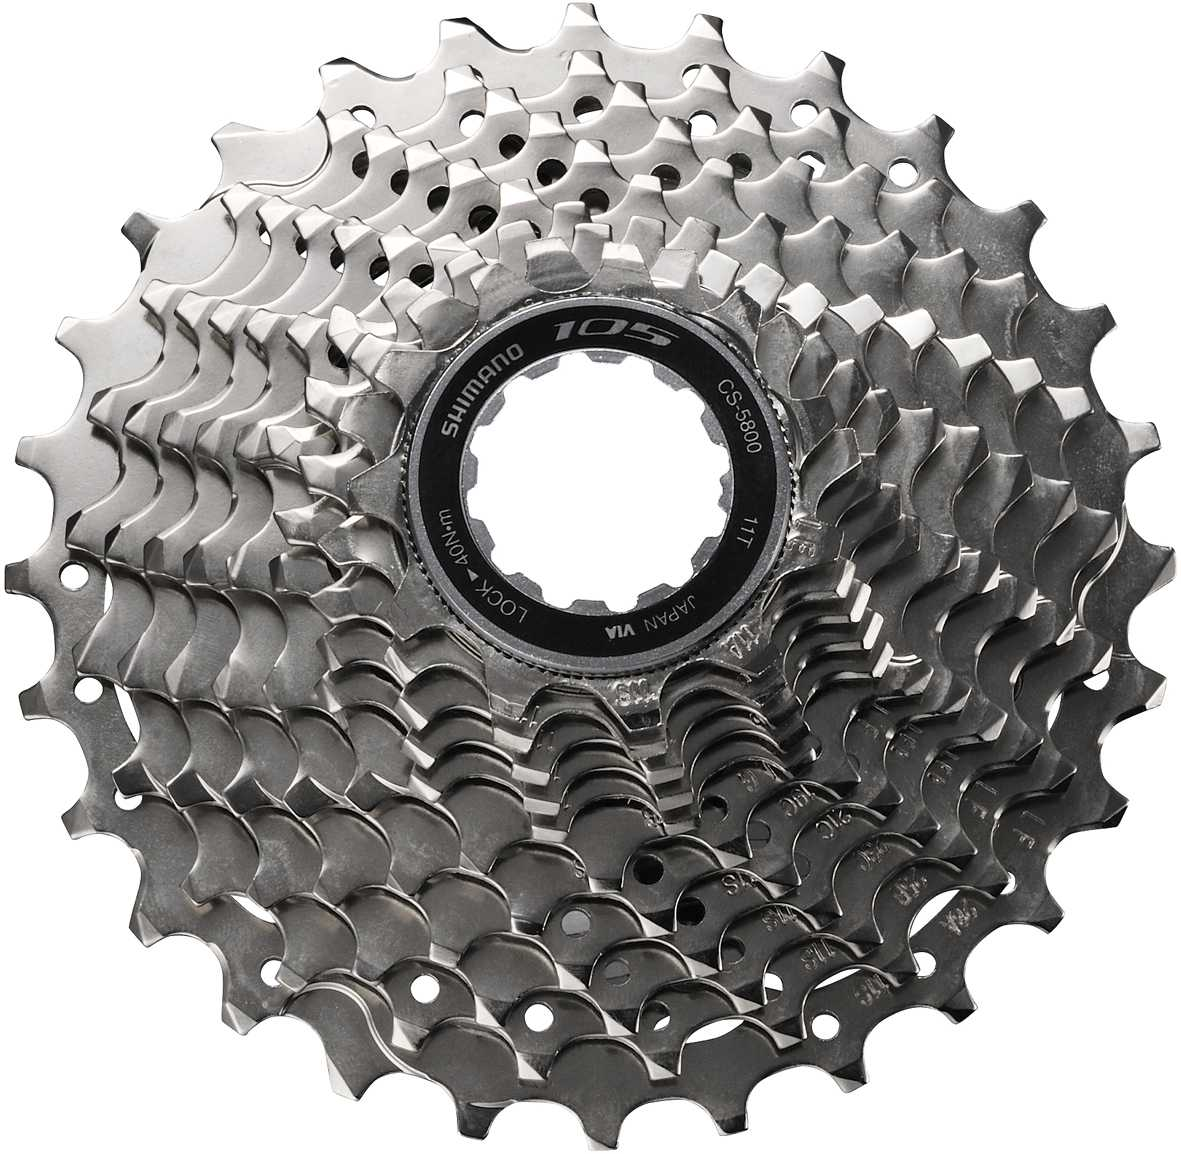 Shimano 105 5800 11 Speed 11-32 Tooth Cassette